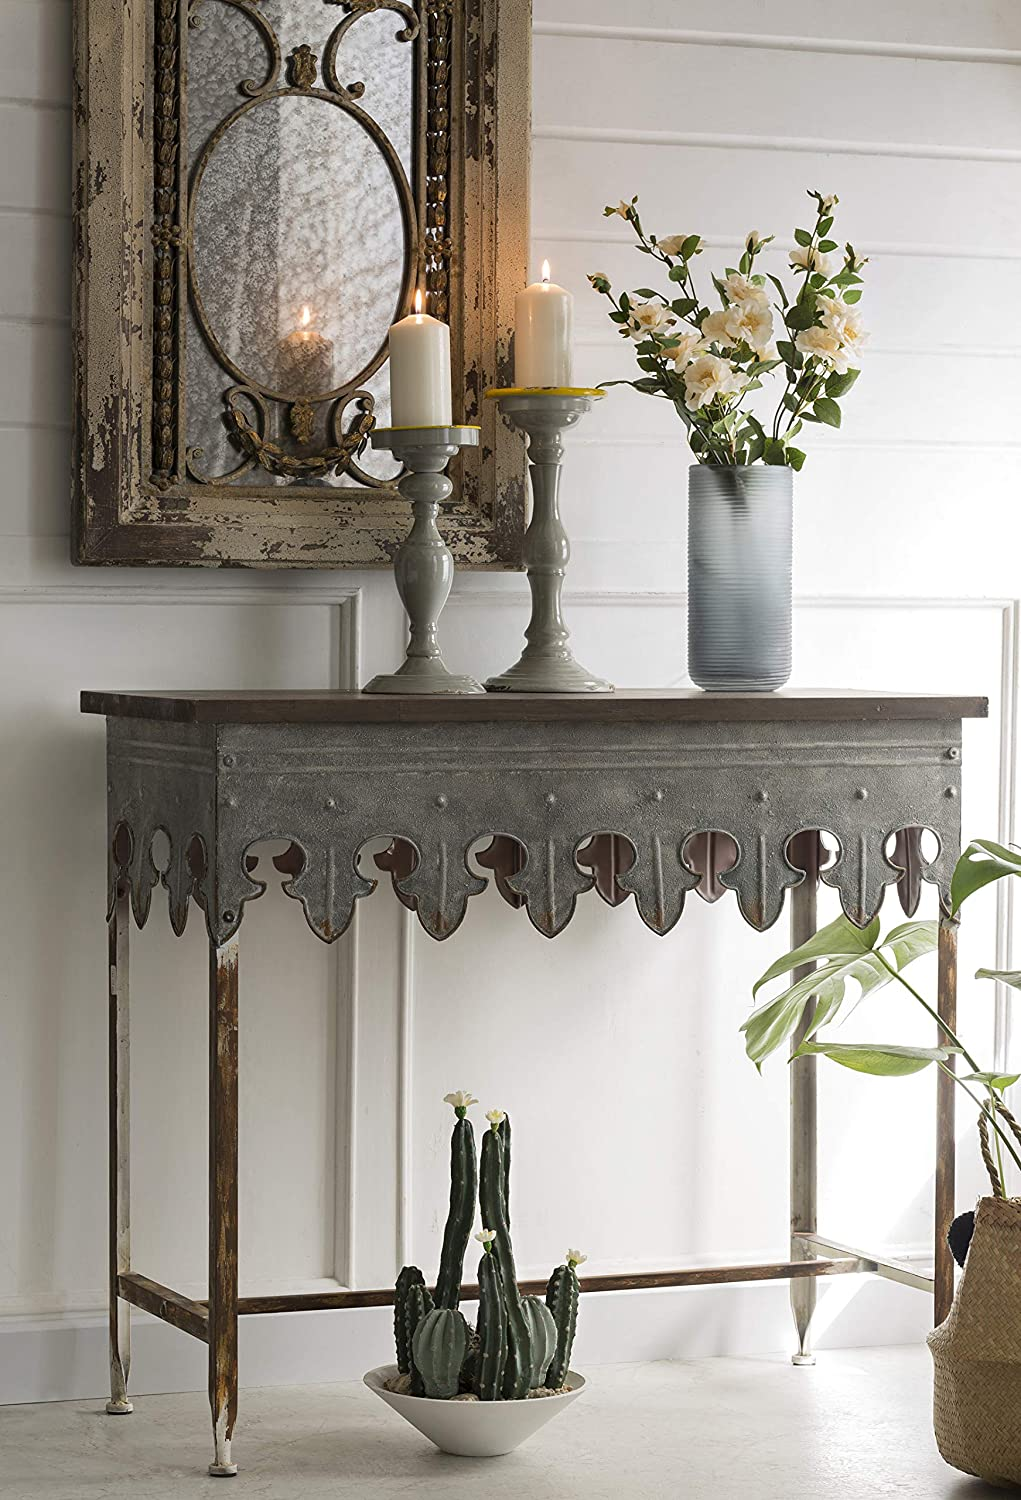 Rustic distressed zinc farmhouse style table with wood top. Come explore Charming European Country Interior Design Inspiration: June Favorites, Part 2 Shares French Country Photos of Interiors to Inspire As Well As Decorating Finds and Tips Shared in June.